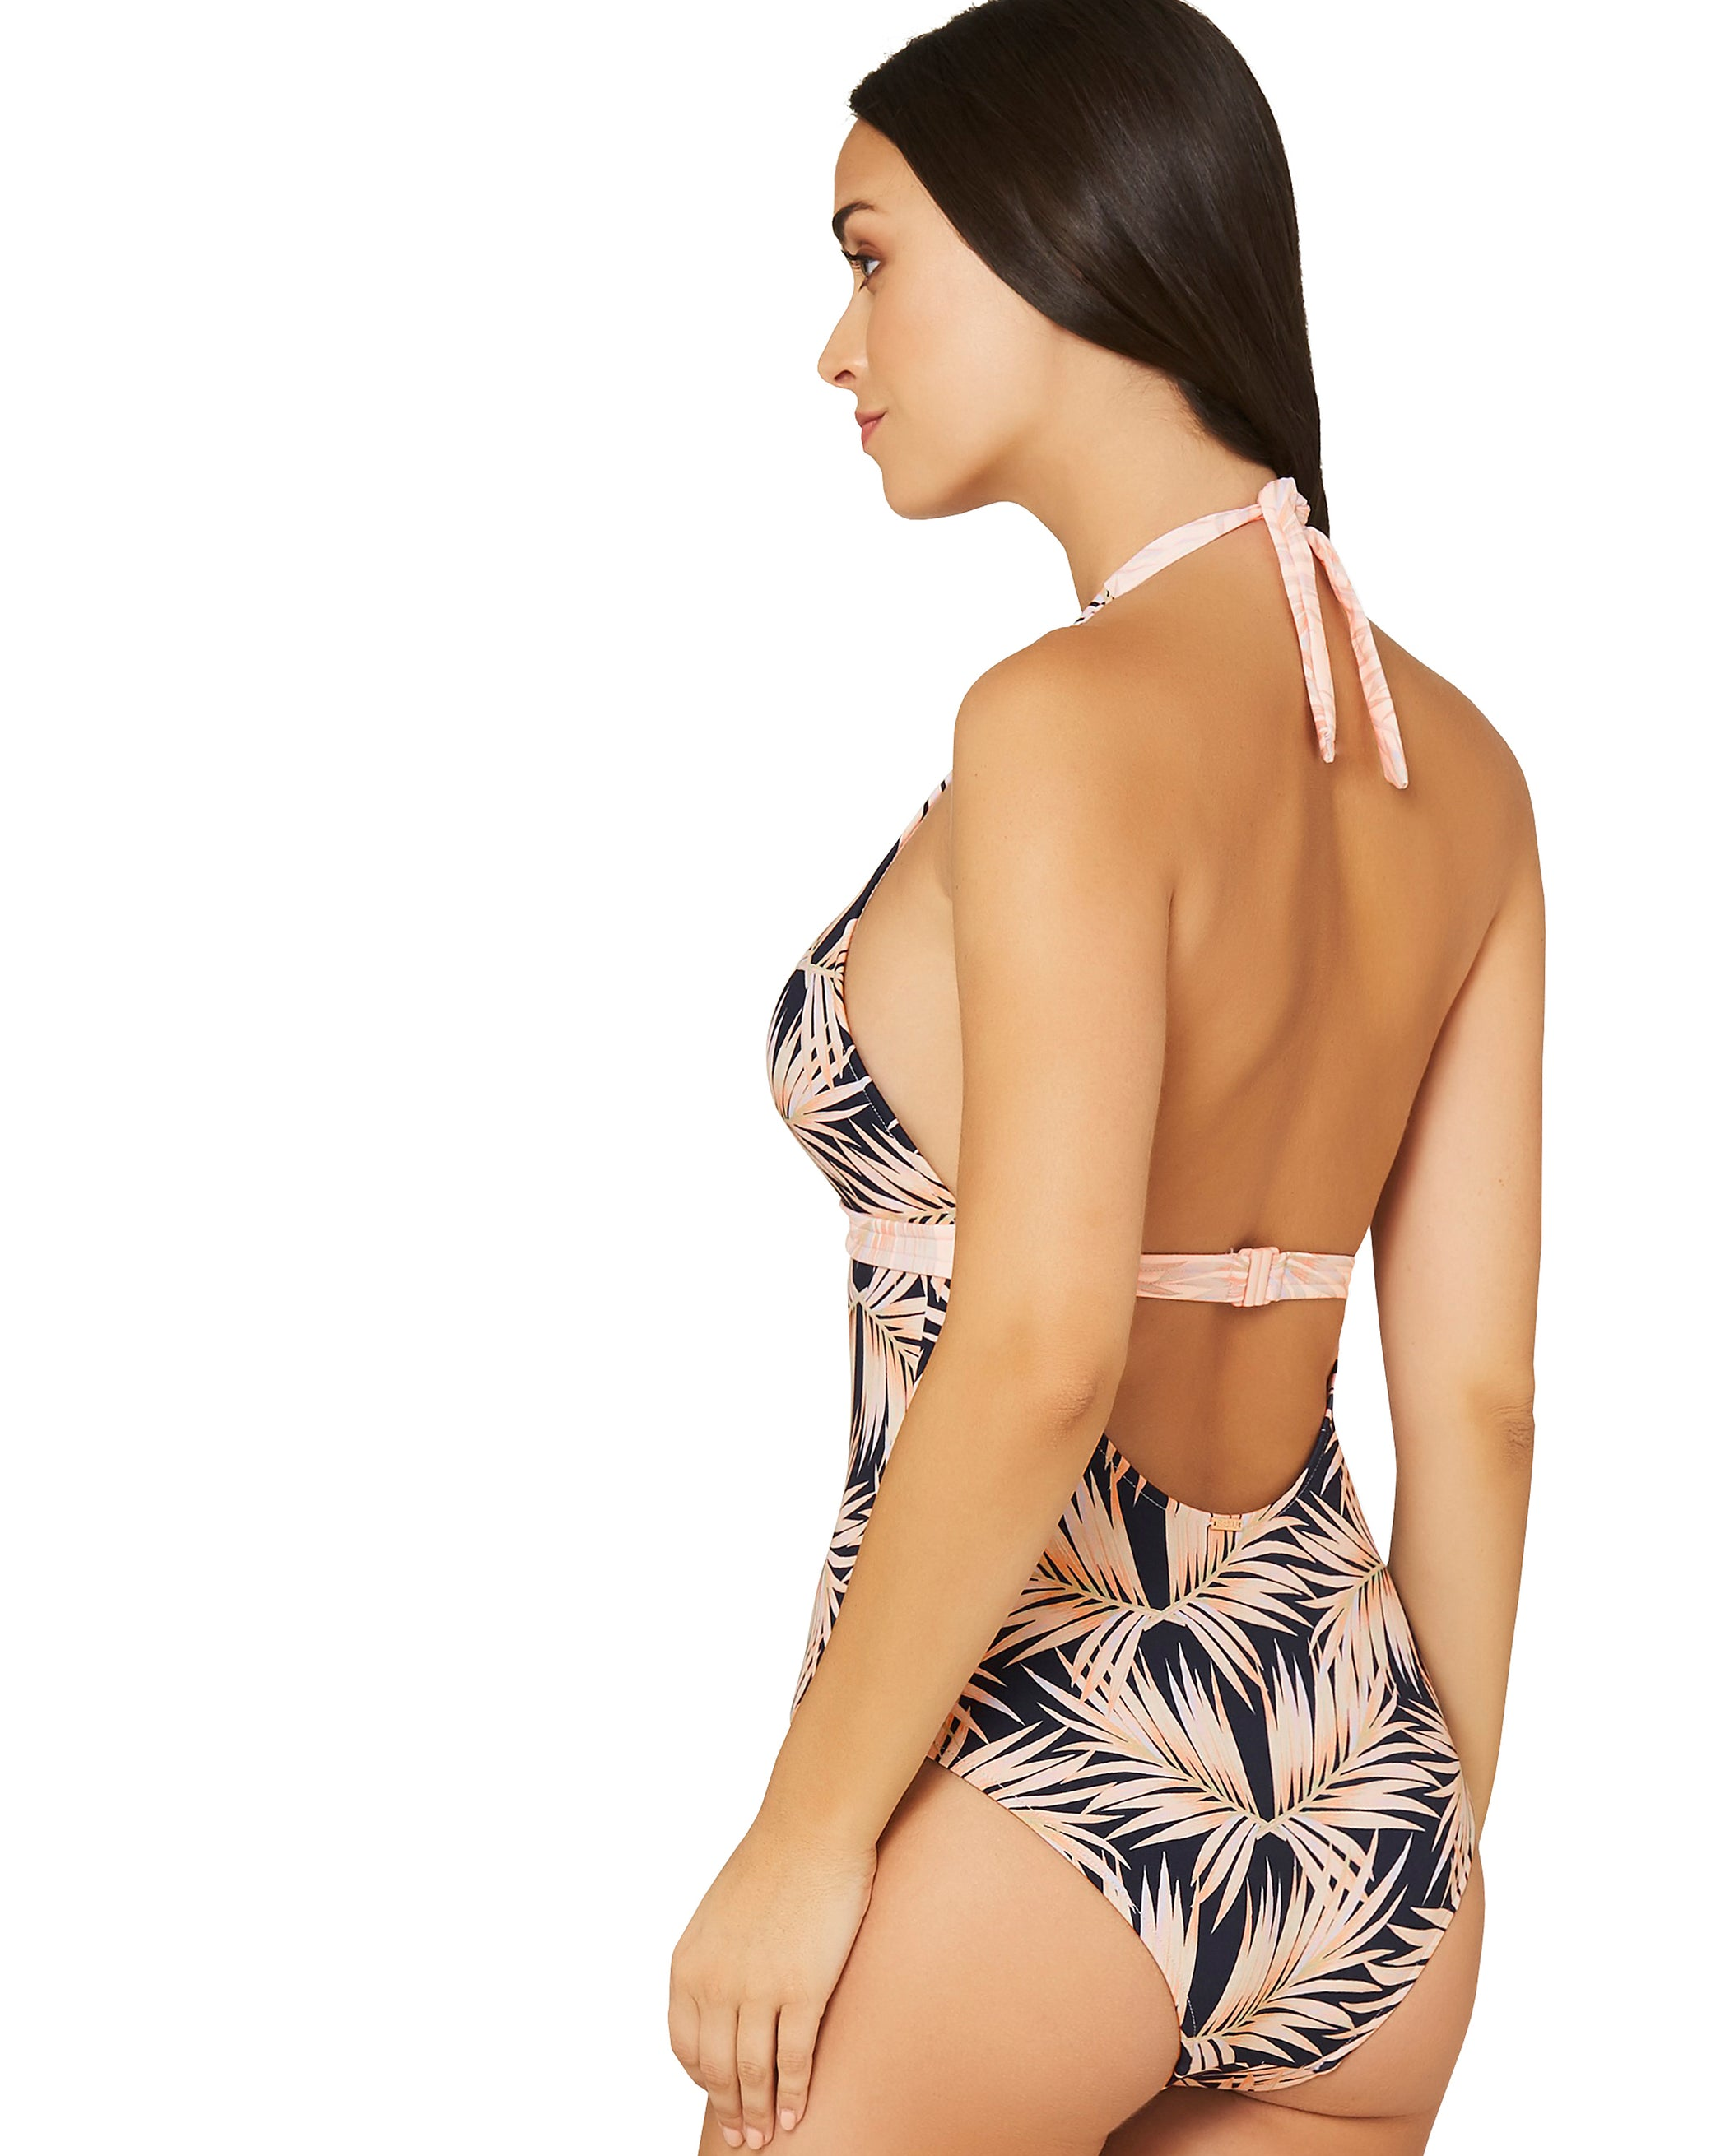 BAHAMA SUMMER HALTER ONE PIECE SWIMSUIT